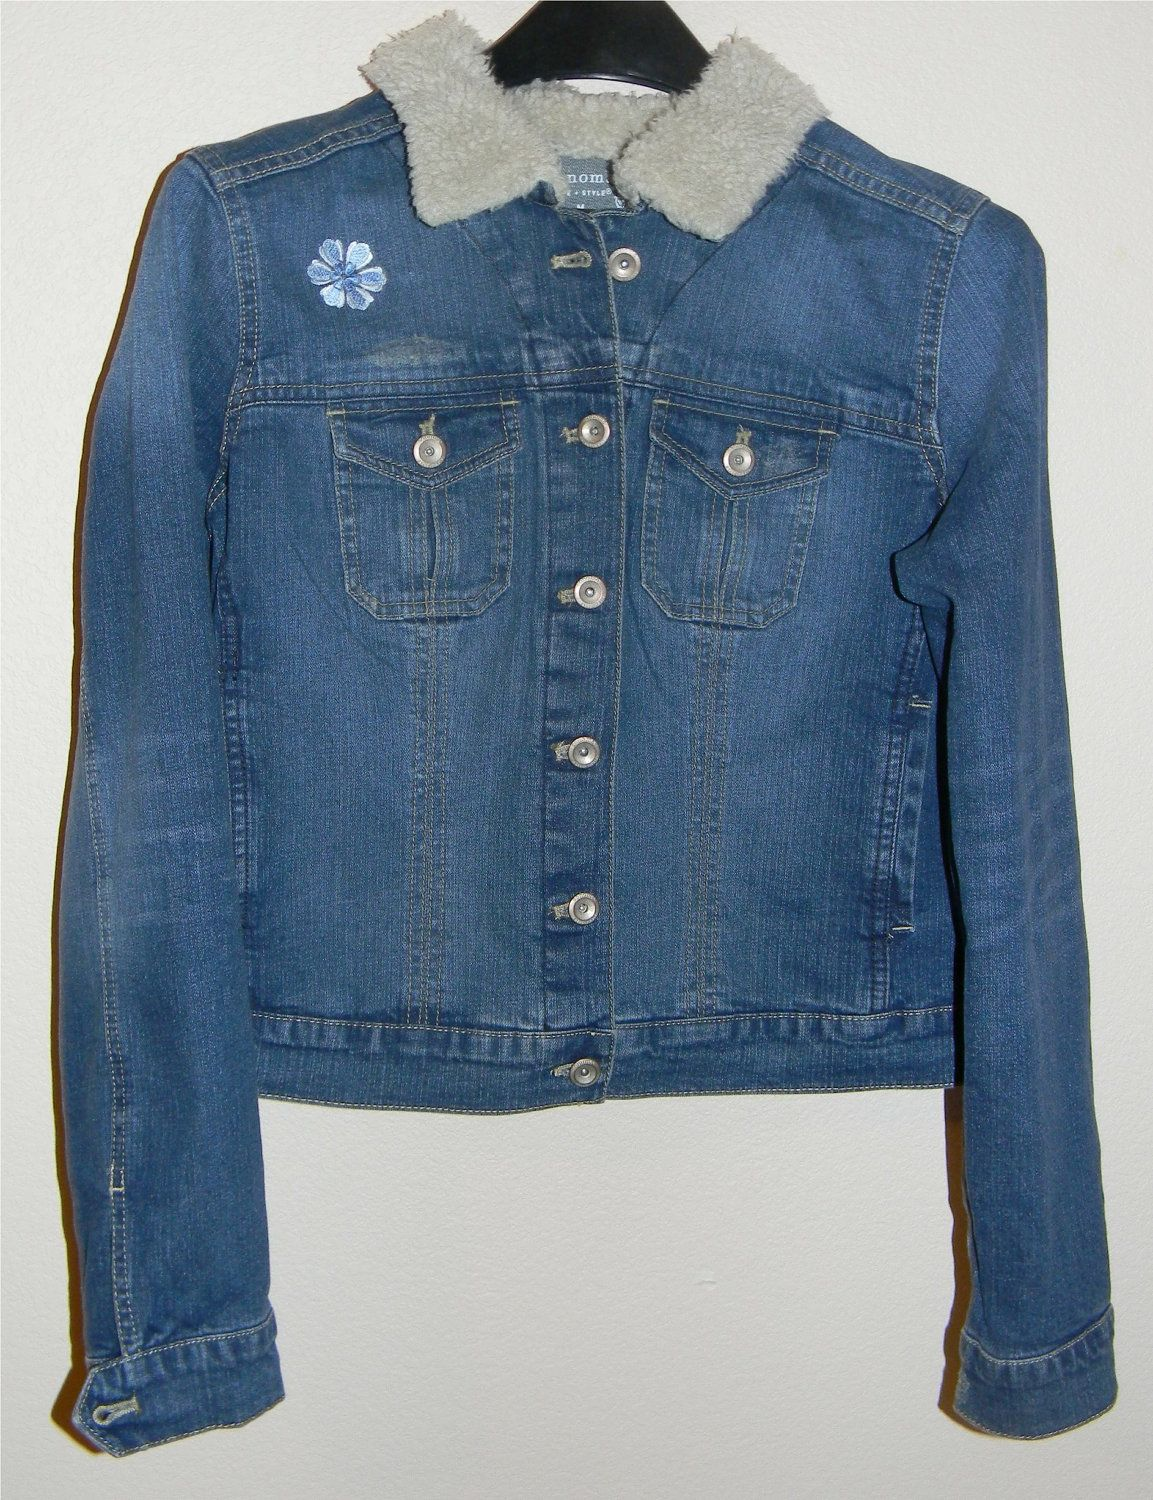 Jacket front. Denim Embroidered Jacket with Sherpa Collar. $65.00, via Etsy.